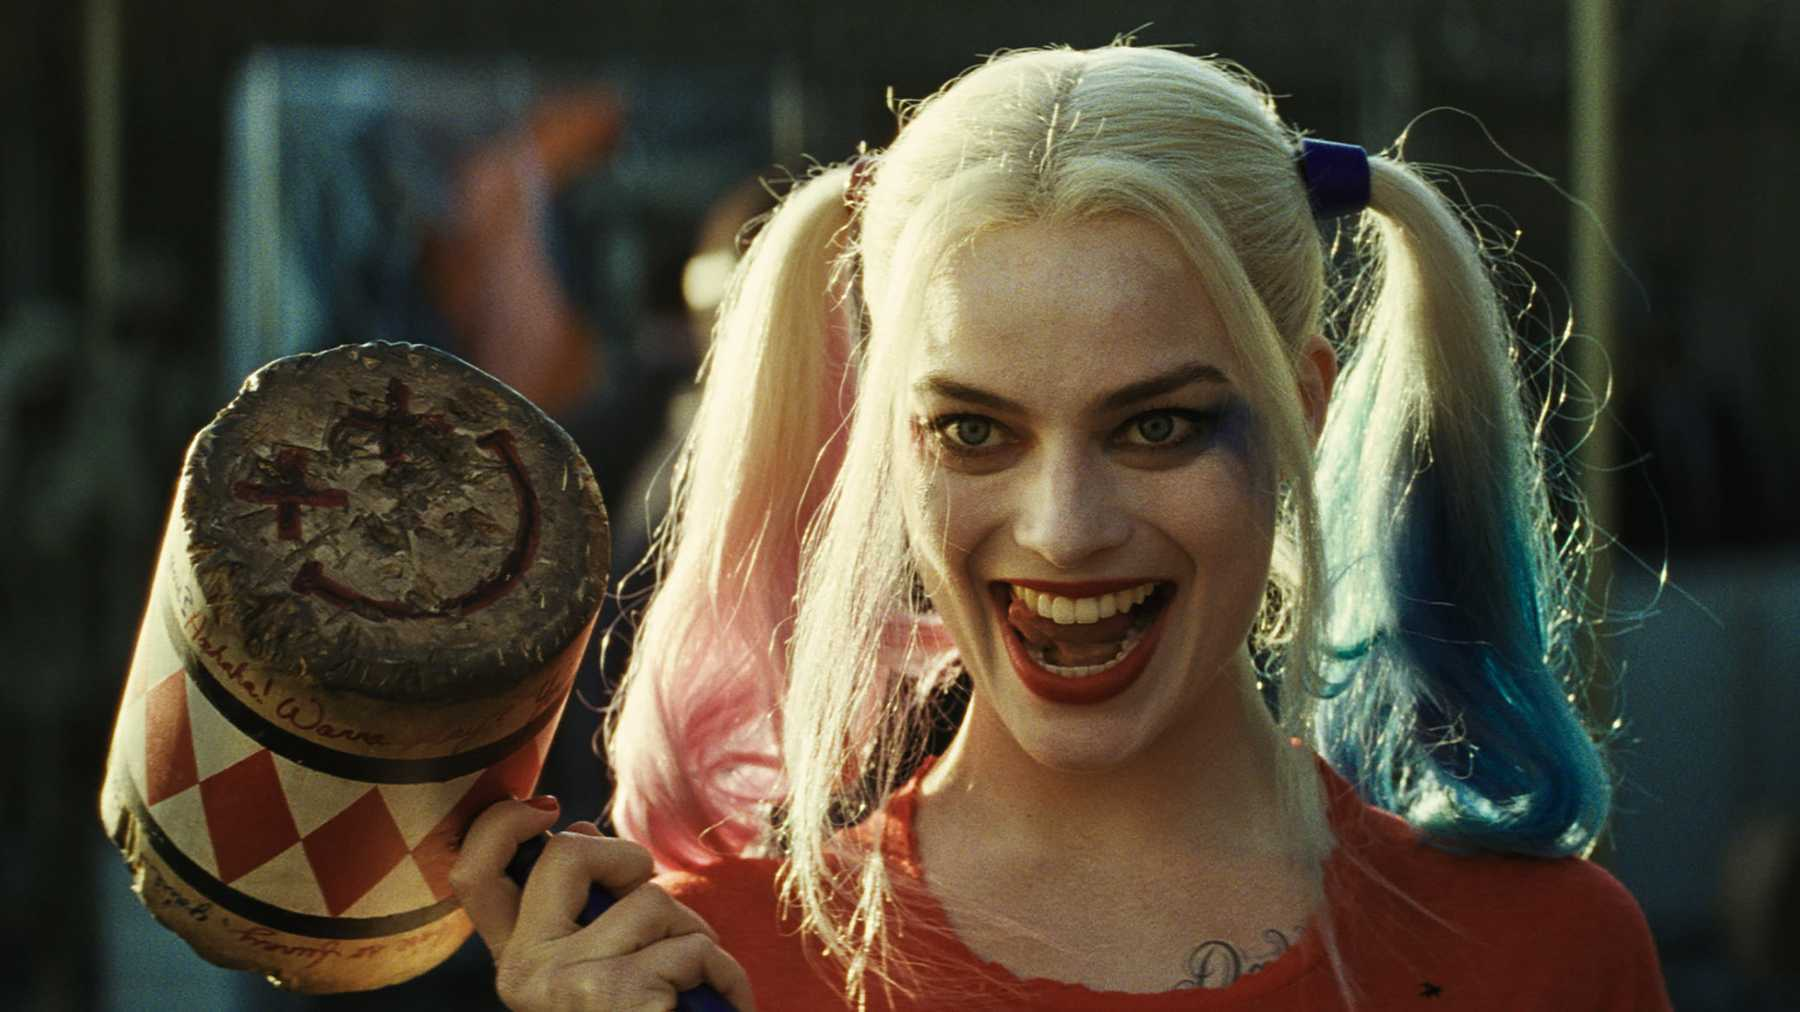 Rumors say DC wants to feature Harley Quinn in some way every year for an unknown period of time. Another Margot Robbie feature? Let's find out.